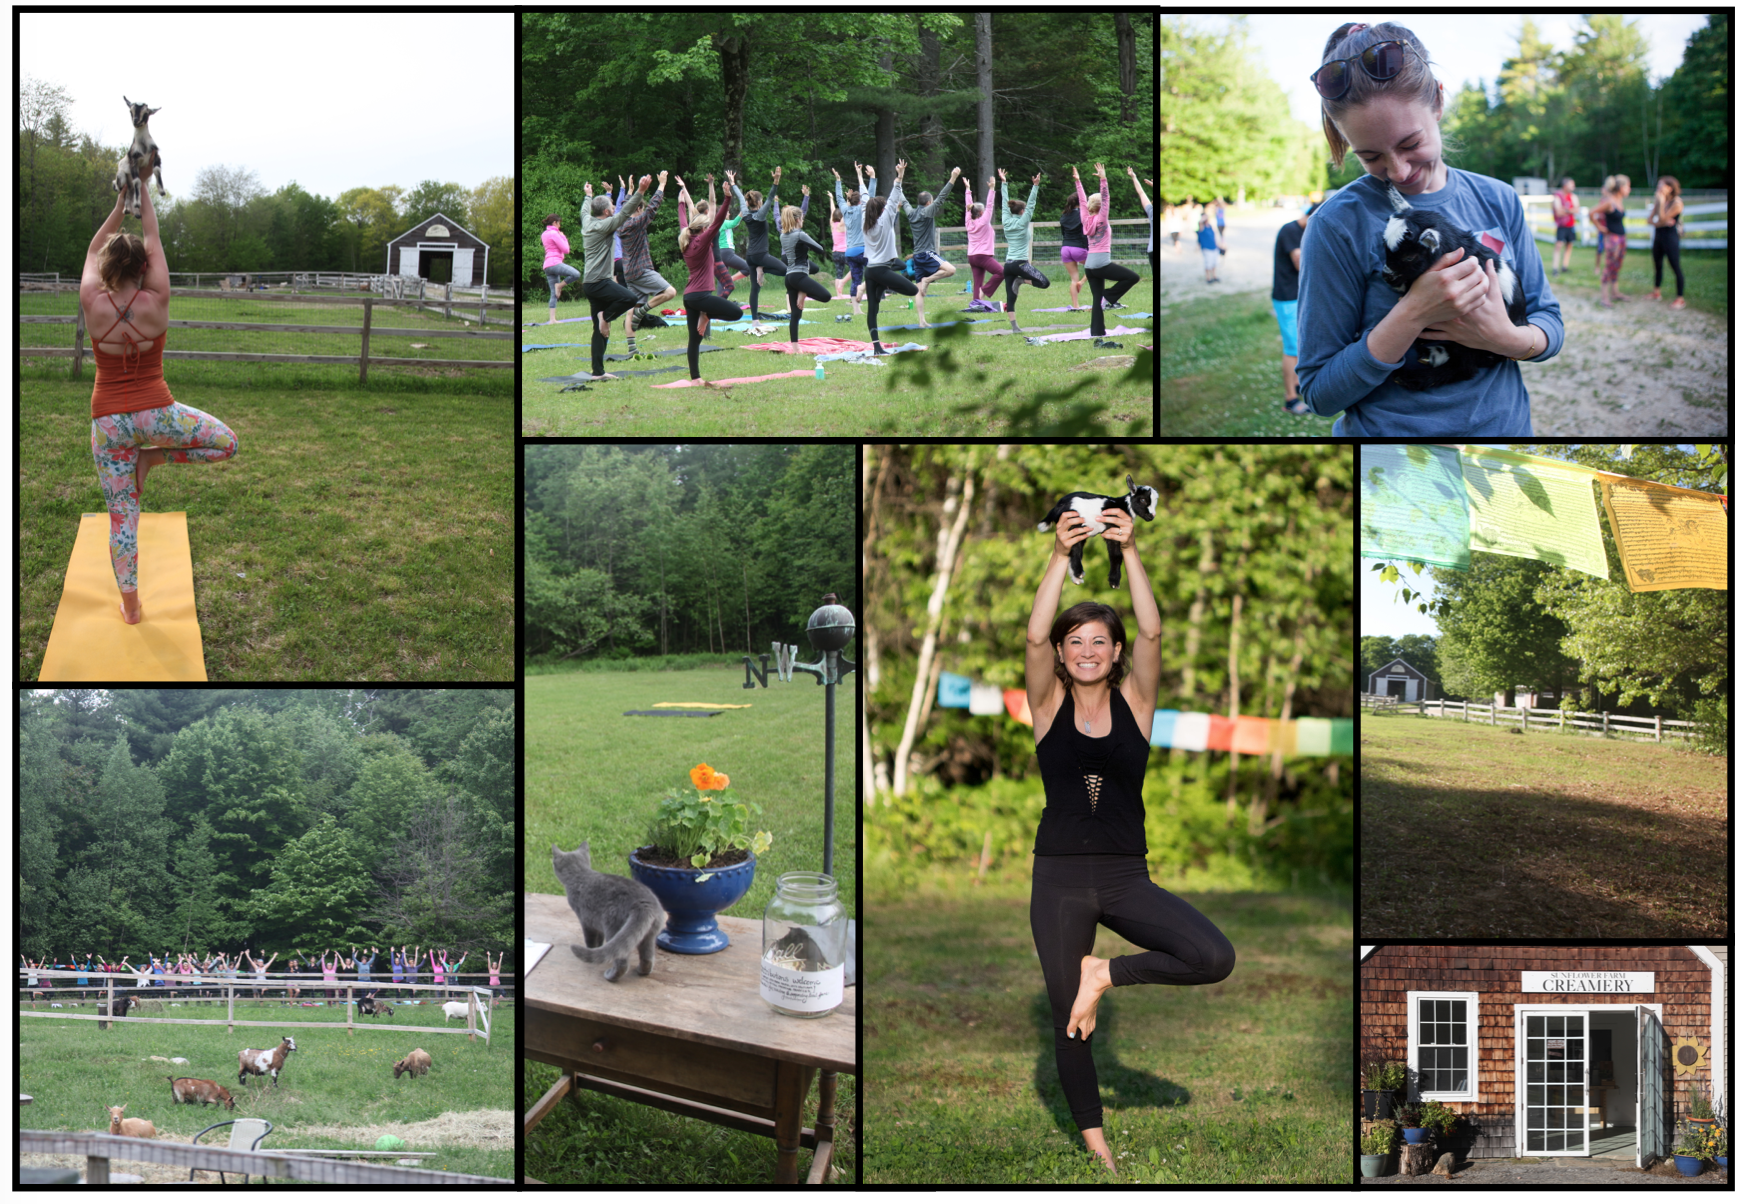 •YOGA IN THE PASTURE: Thursdays 5:30-6:30pm & Saturdays 9:30-10:30am. Begins May 30th, 2019-Sep 7, 2019. All levels donation Yoga followed by goat snuggling and cheese tasting. Bring a mat and a smile. And prepare to make a sweet memory. No Yoga on 4th of July.